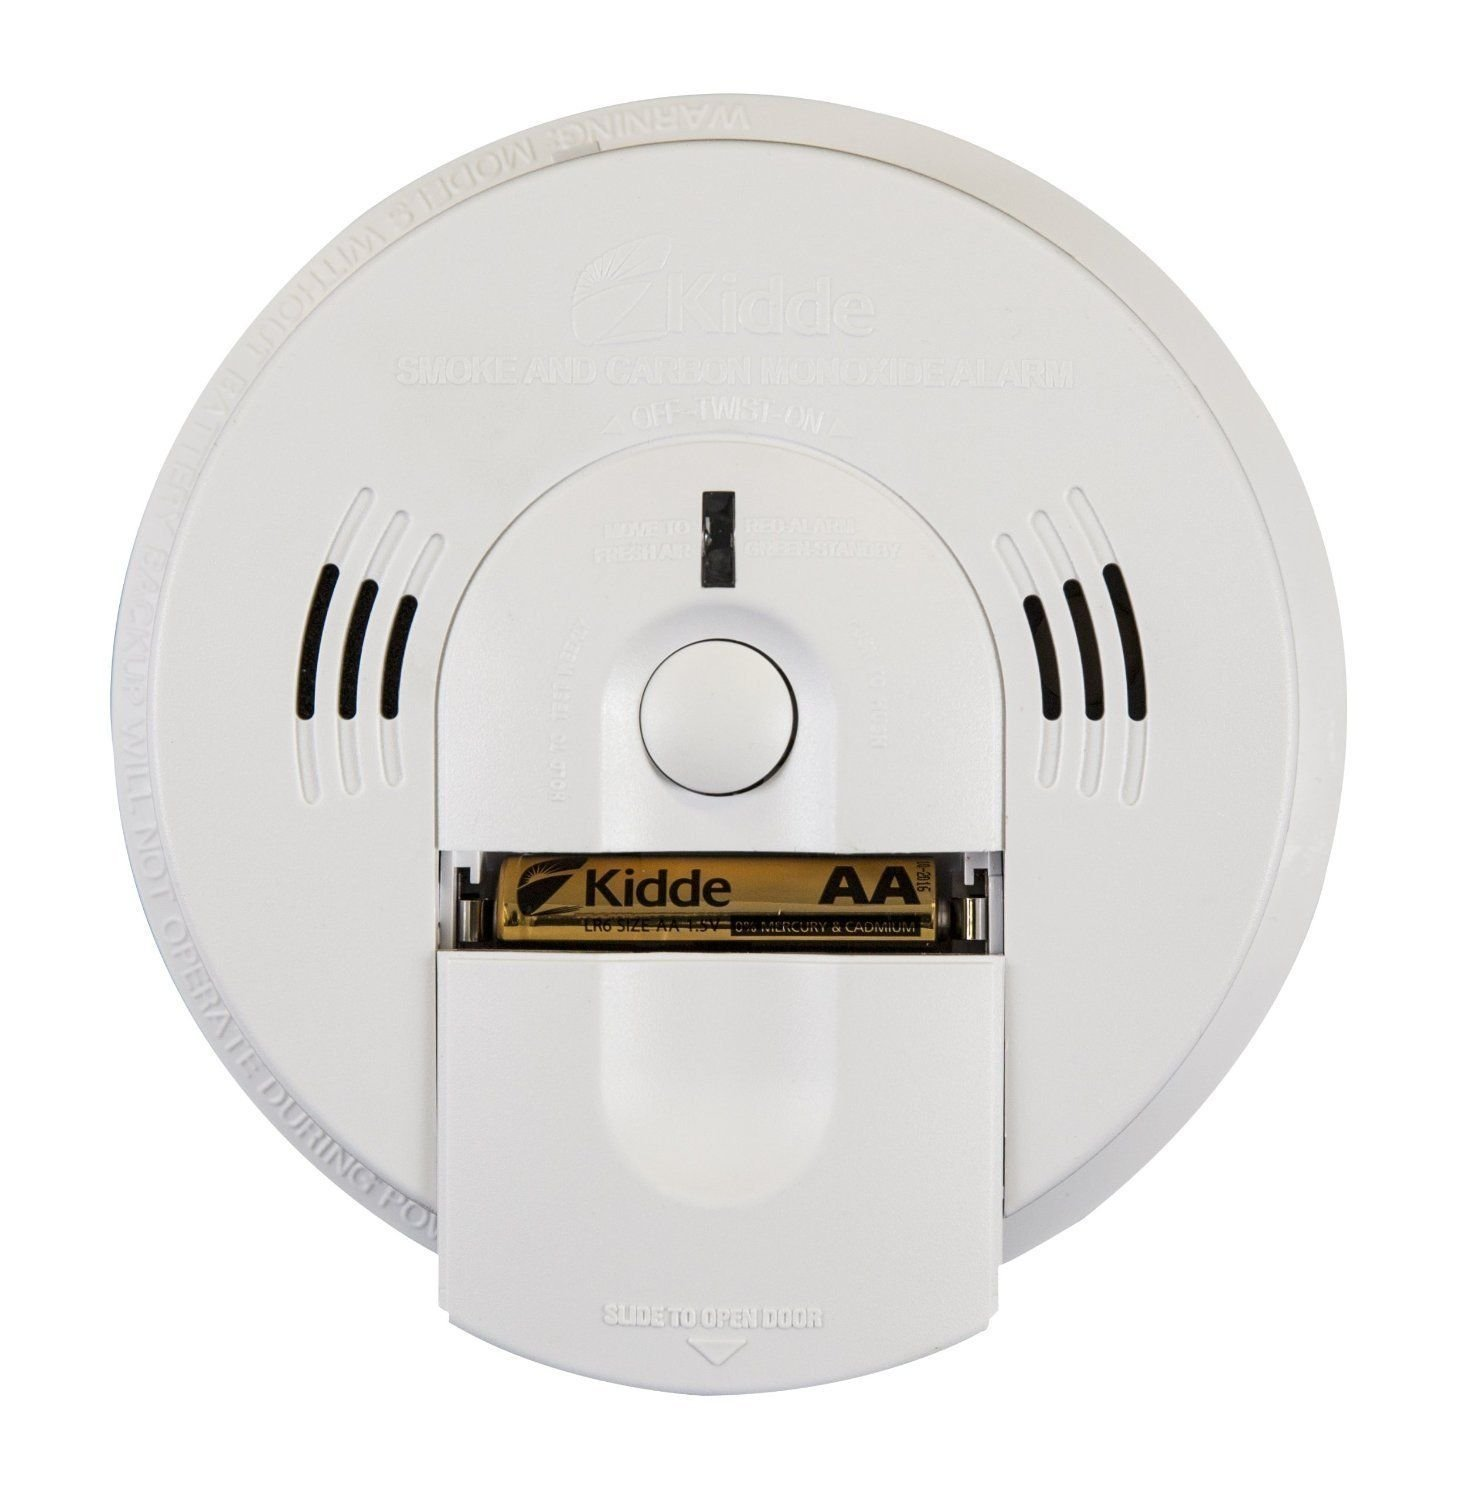 4 Pack Of Kidde KN-COSM-B Battery-Operated Combination Carbon Monoxide and Smoke Alarm with Talking Alarm by Kidde